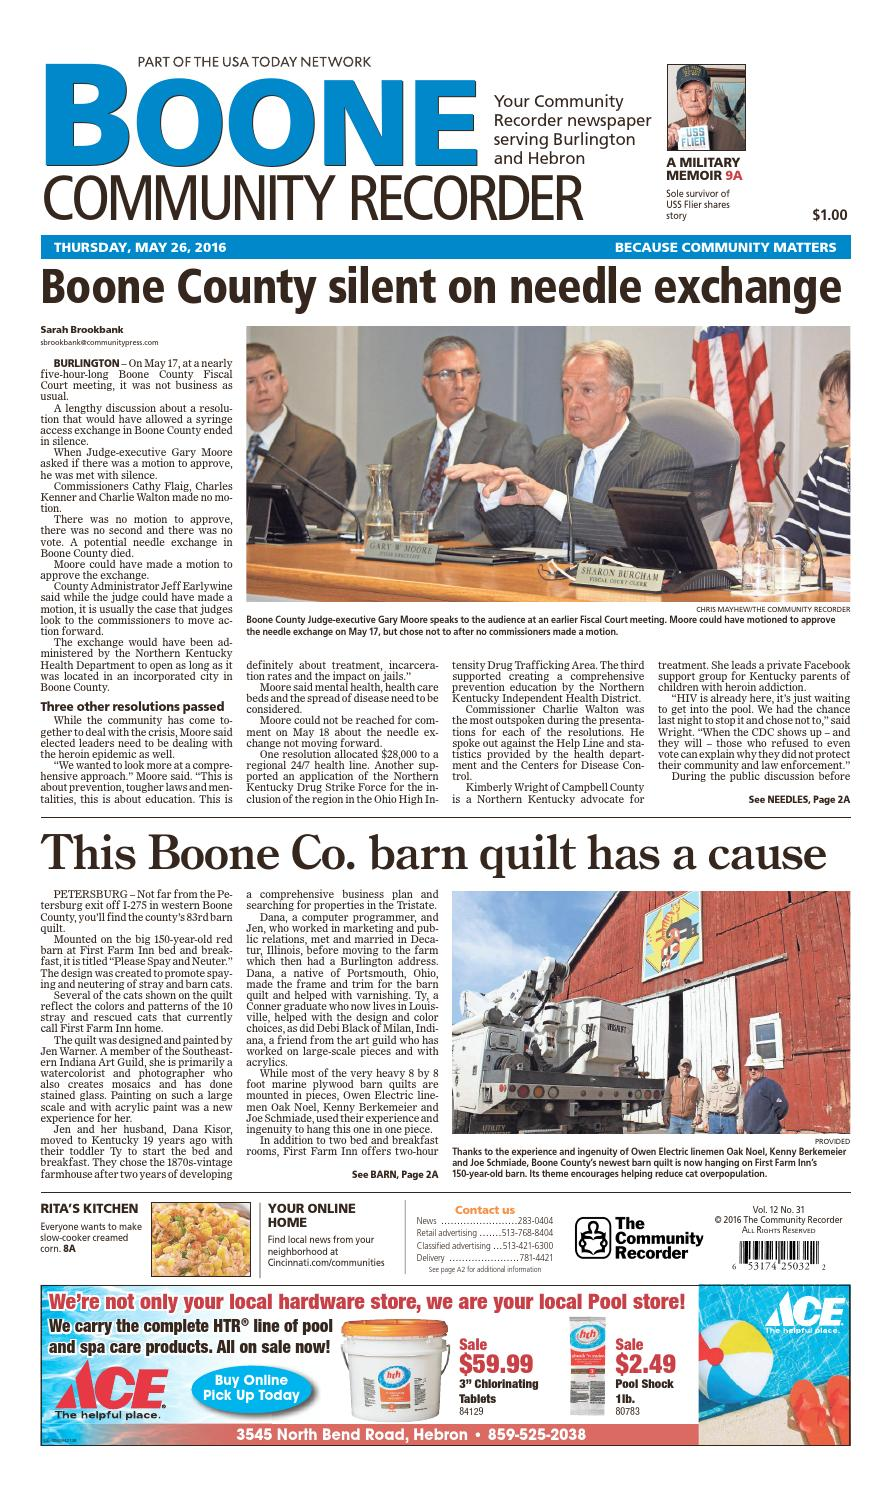 c15c3d4ff1a Boone community recorder 052616 by Enquirer Media - issuu